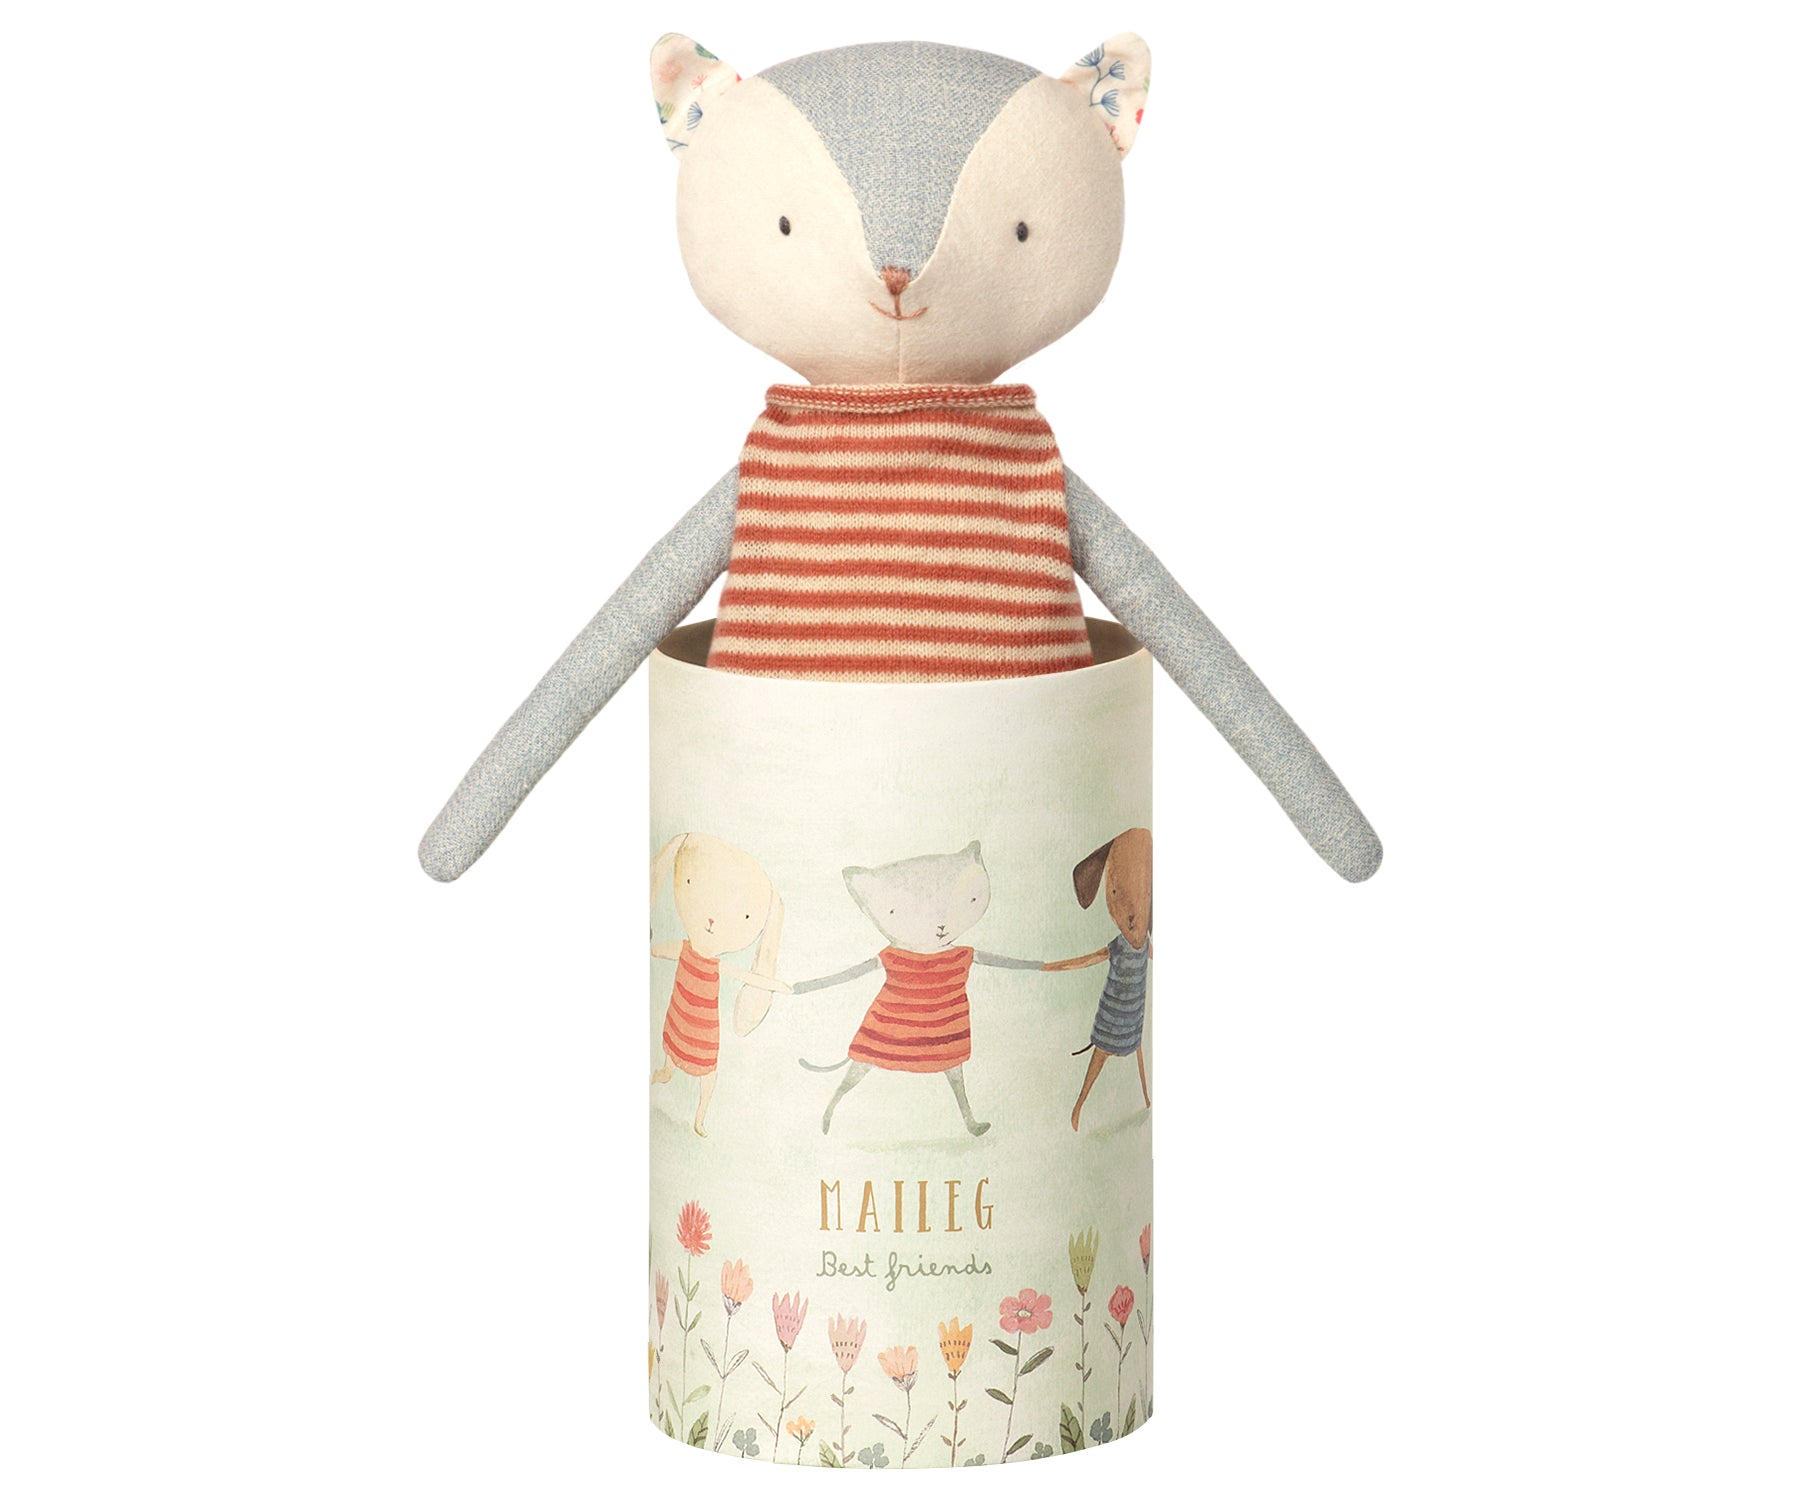 Gatito Best Friend en tubo decorado - Miss Coppelia